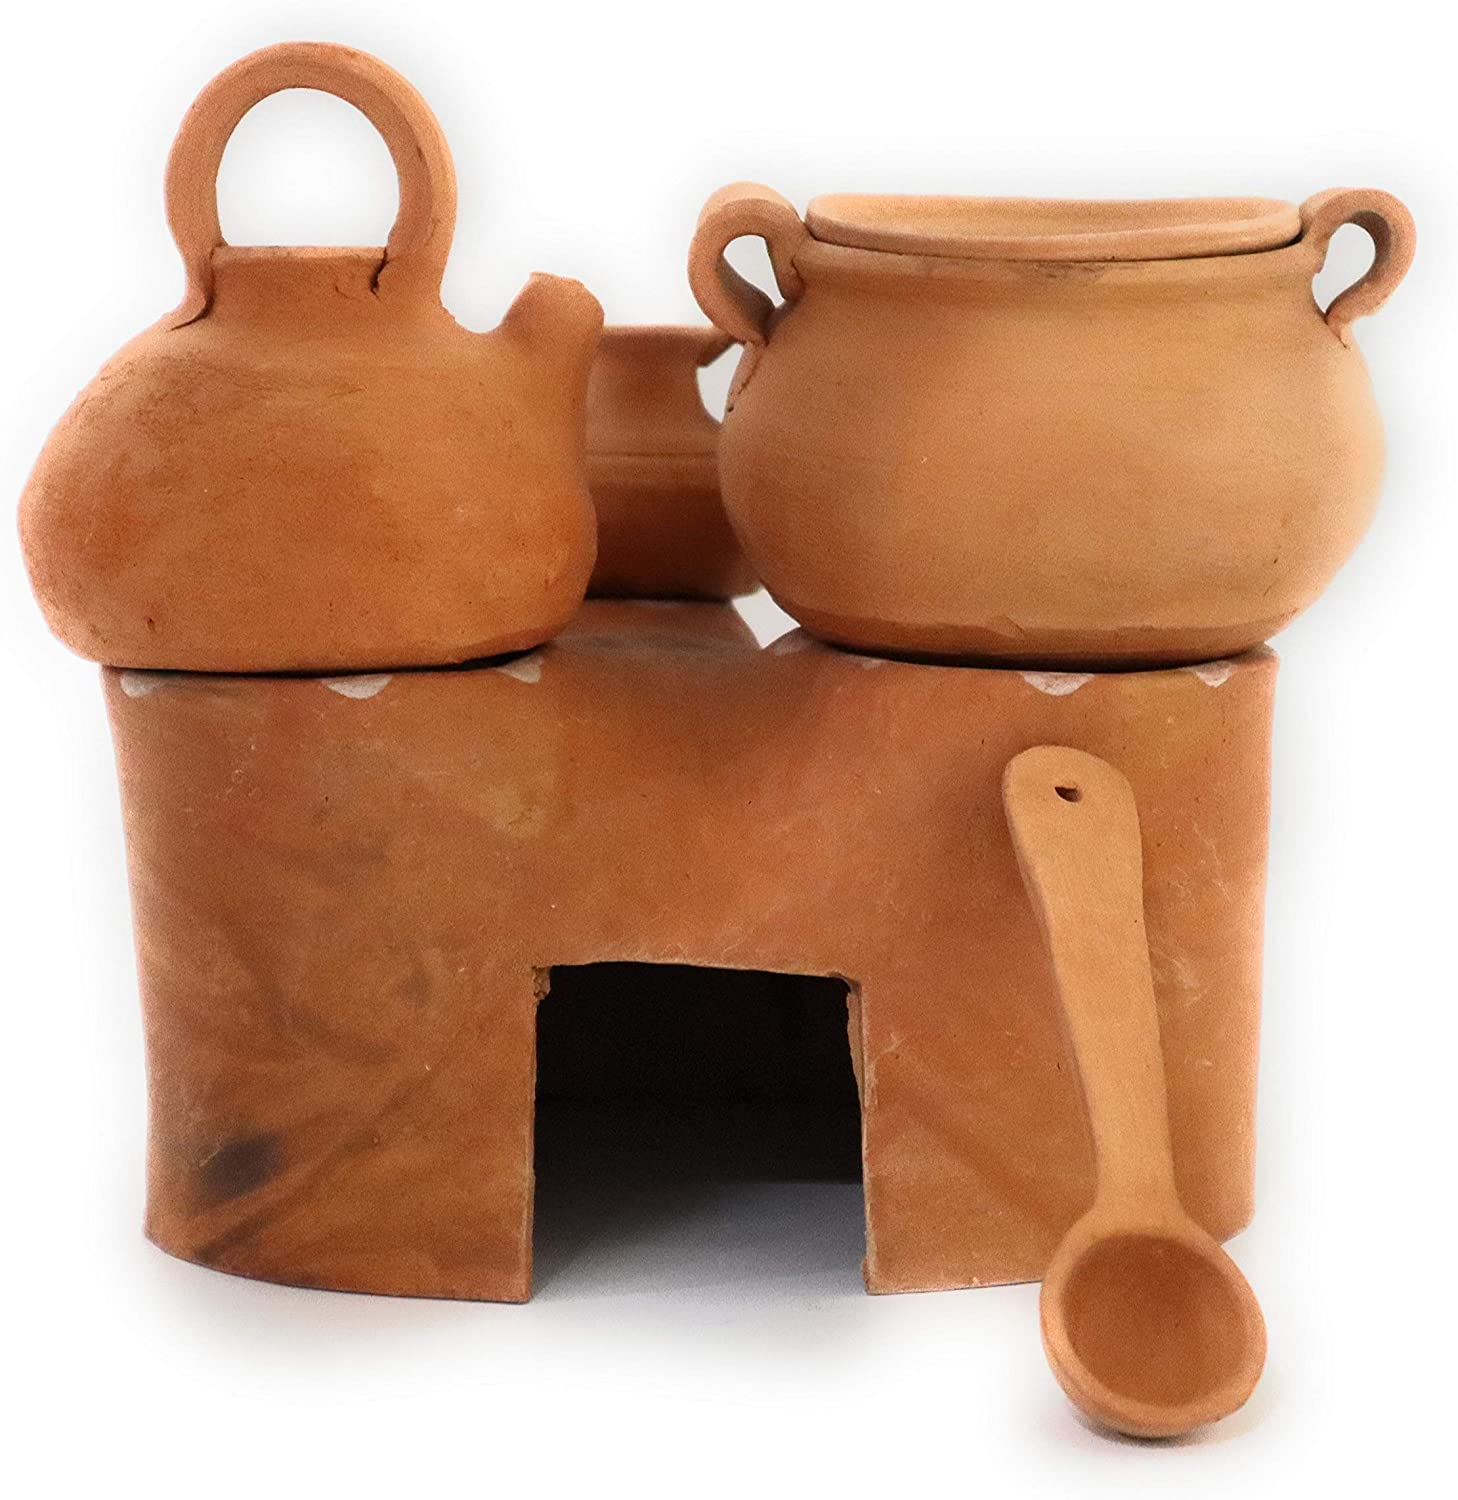 """Traditional Wood Fired Stove Made of Mud. Decorative Ceramic of Traditional Stove Used in The Andes. Height: 6.30"""""""